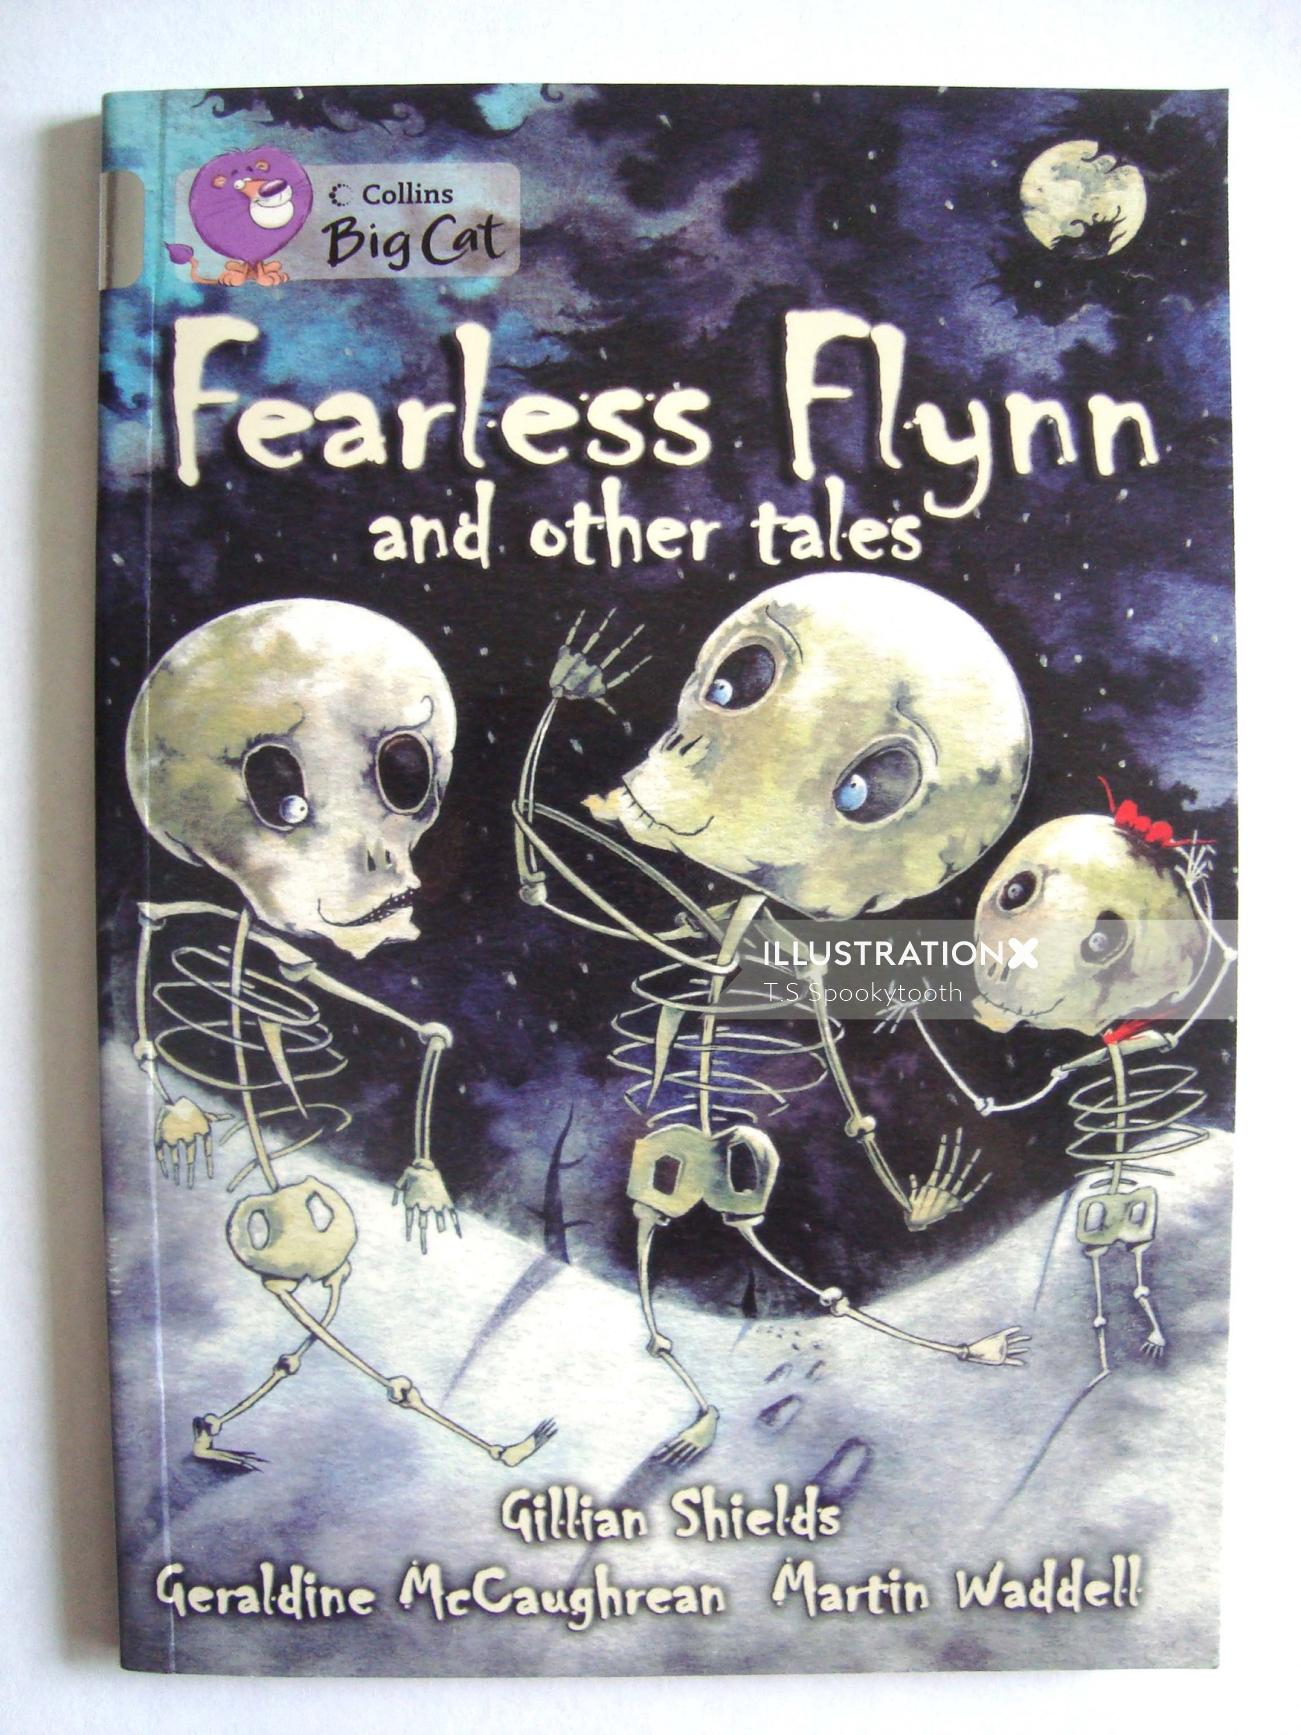 Illustration for fearless flynn by T.S.Spookytooth